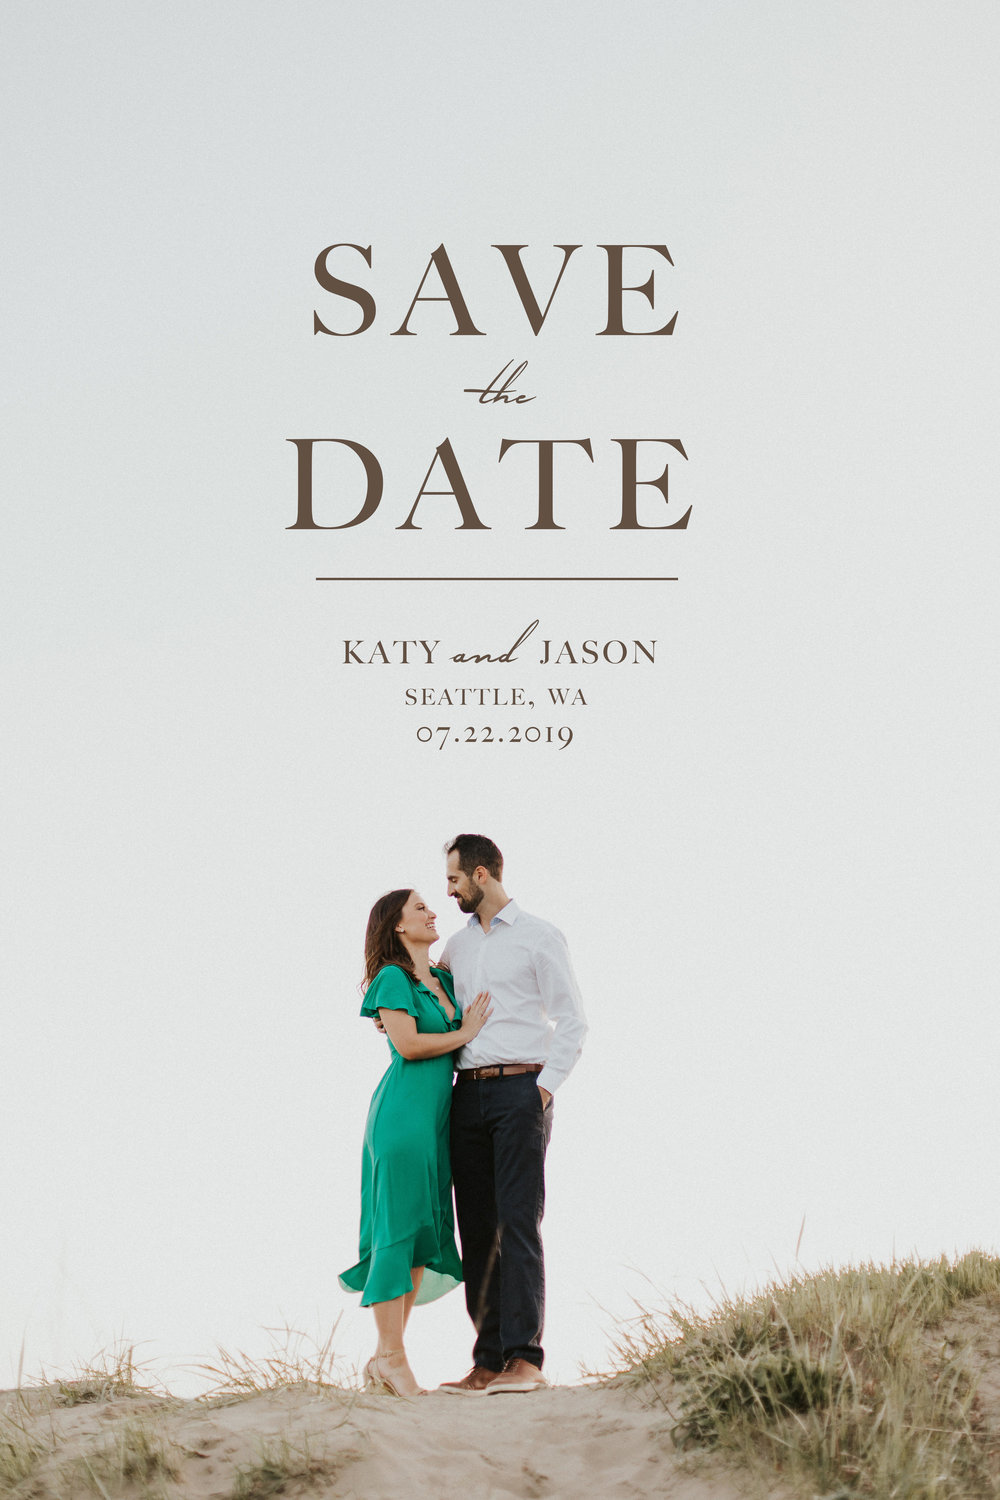 Save the date sample.jpg